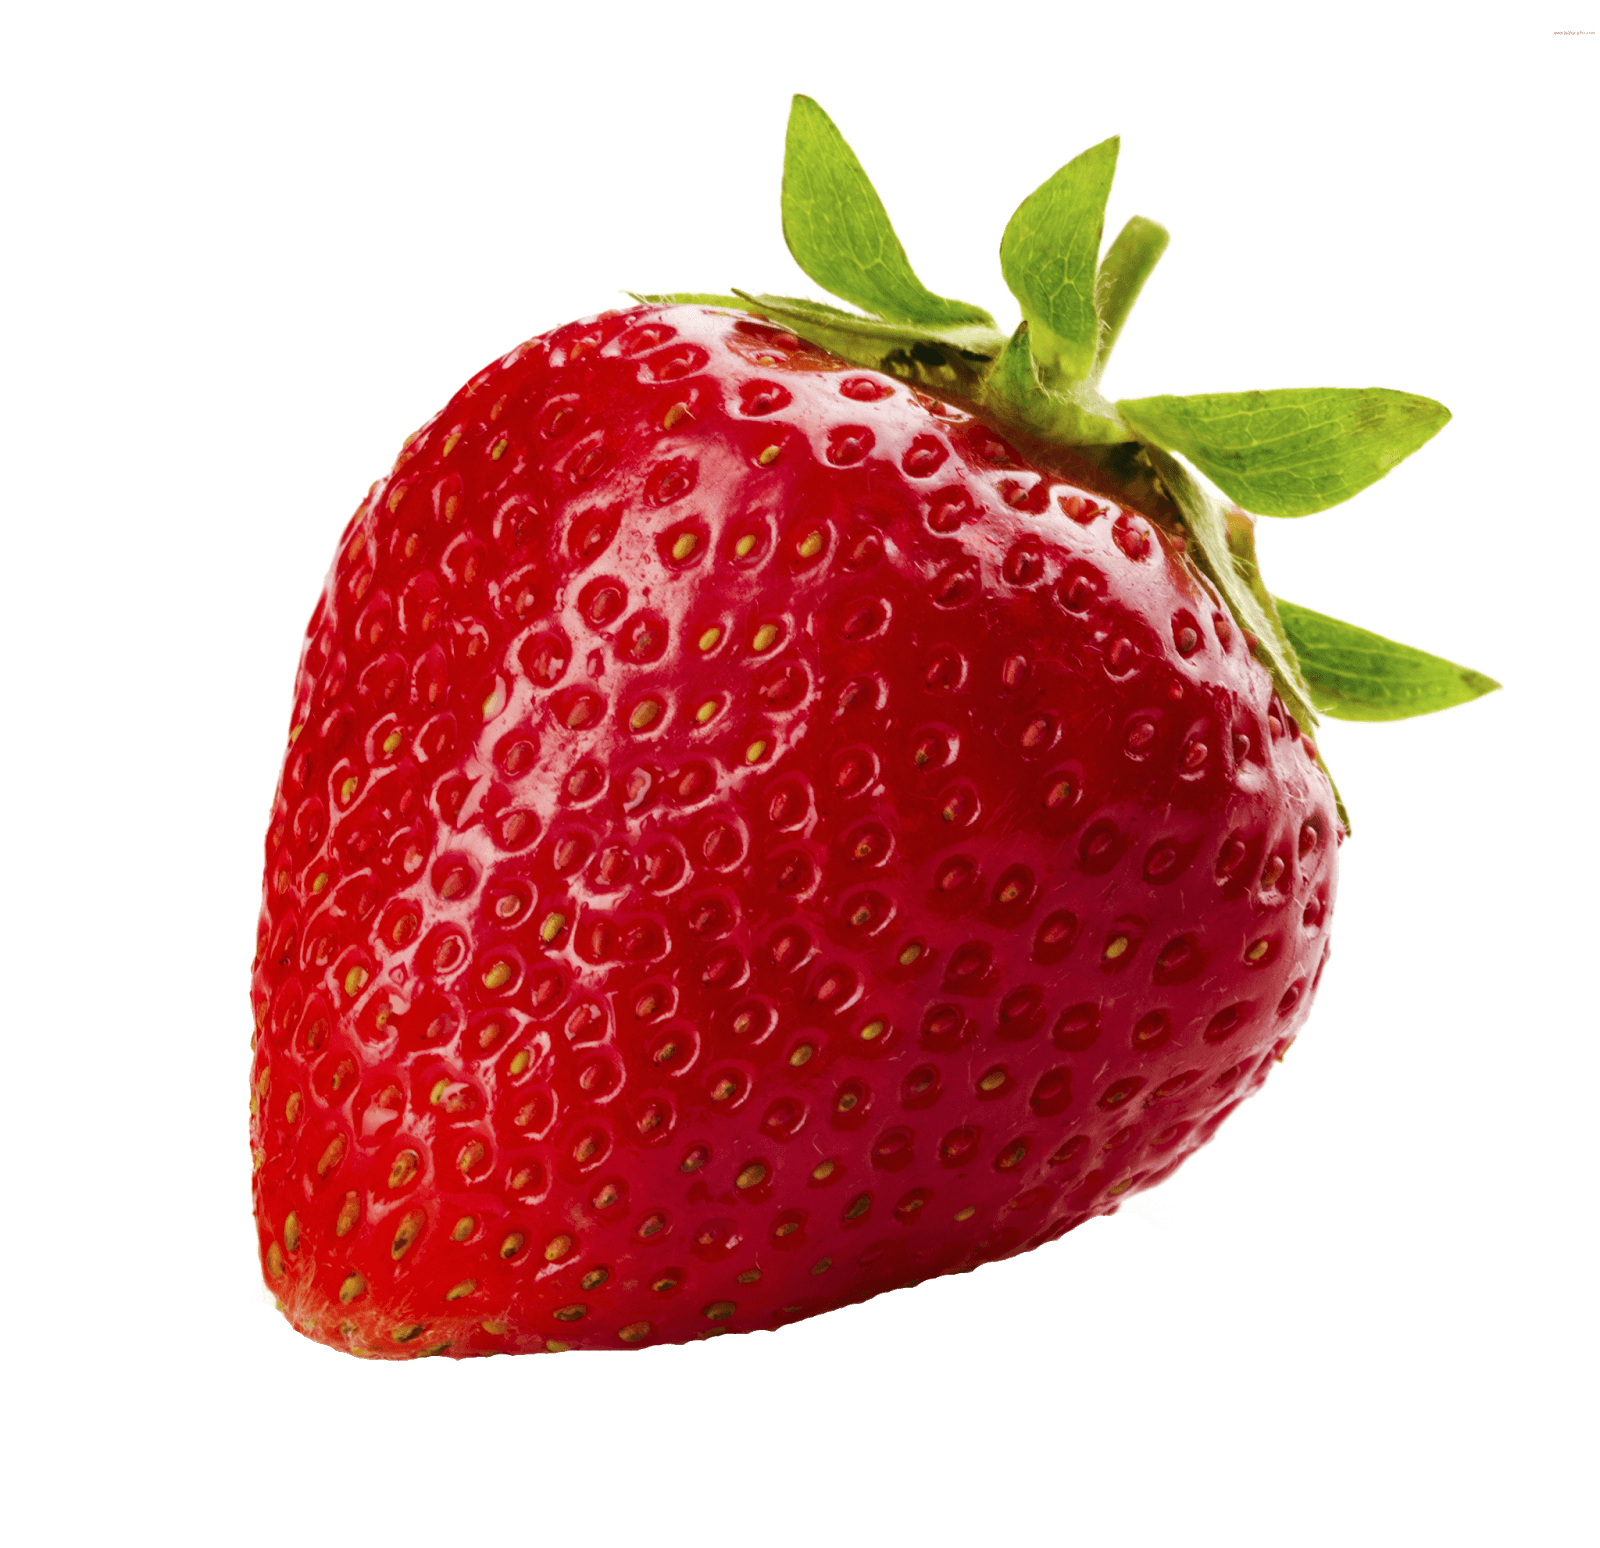 Strawberries png. Strawberry solo transparent stickpng